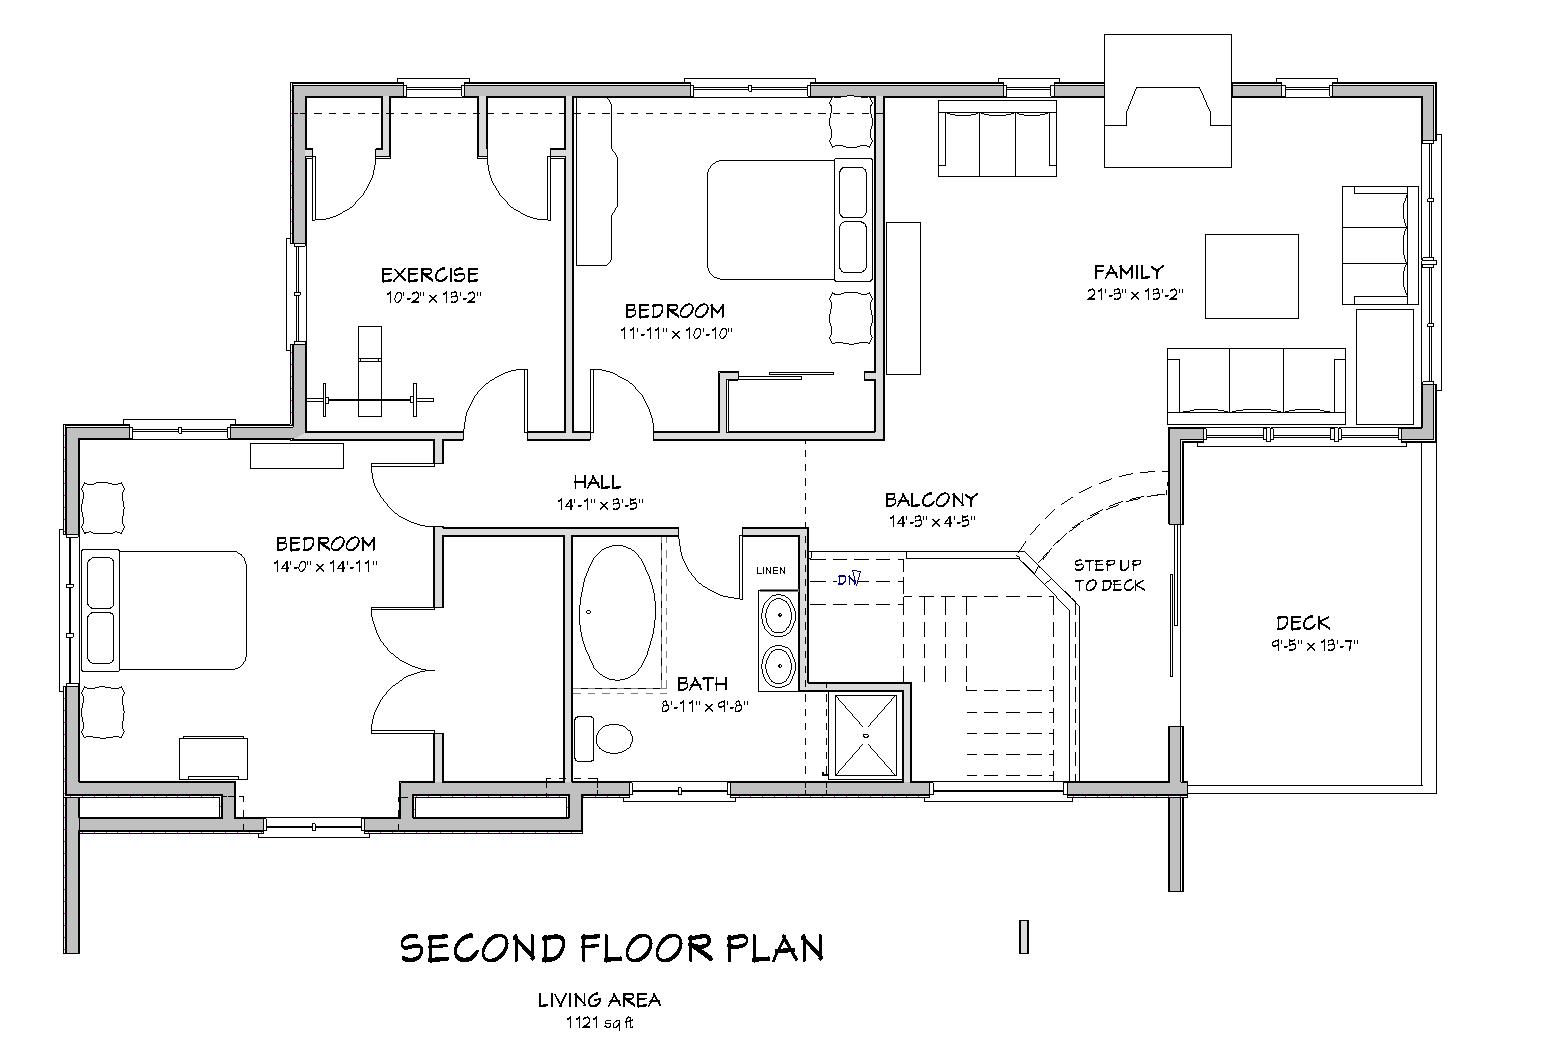 The penobscot country house plan d64 2431 the house for 3 bedroom house floor plans with models pdf